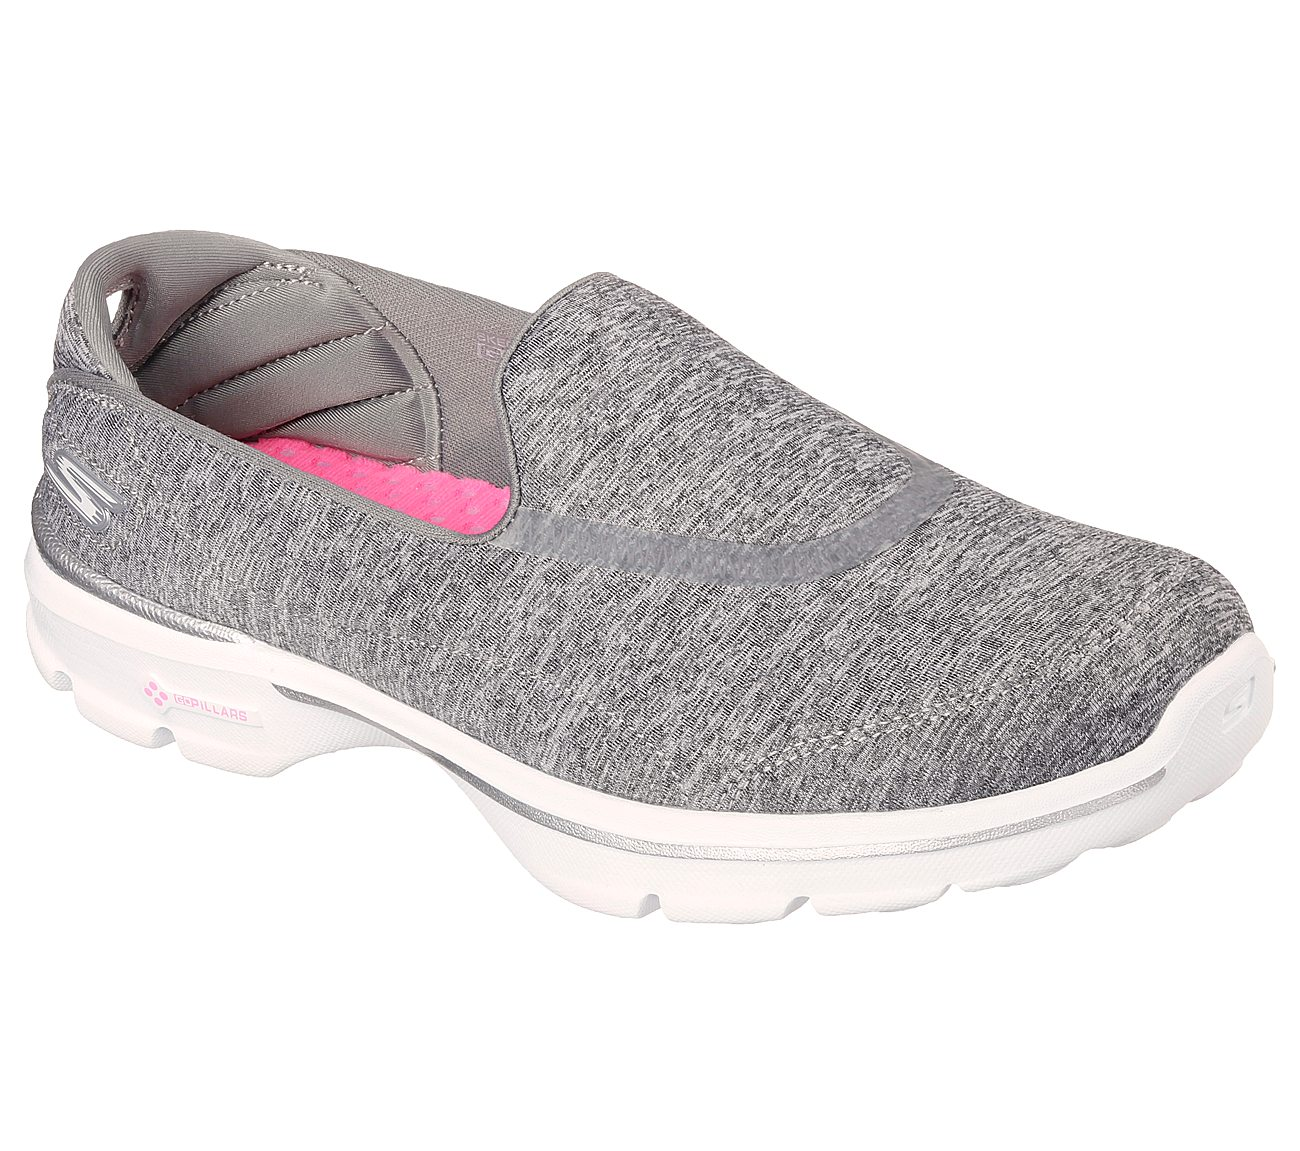 Skechers GOwalk 3  Reboot 6500 47 65 reviews Read 65 Reviews  Hover to zoom Gray